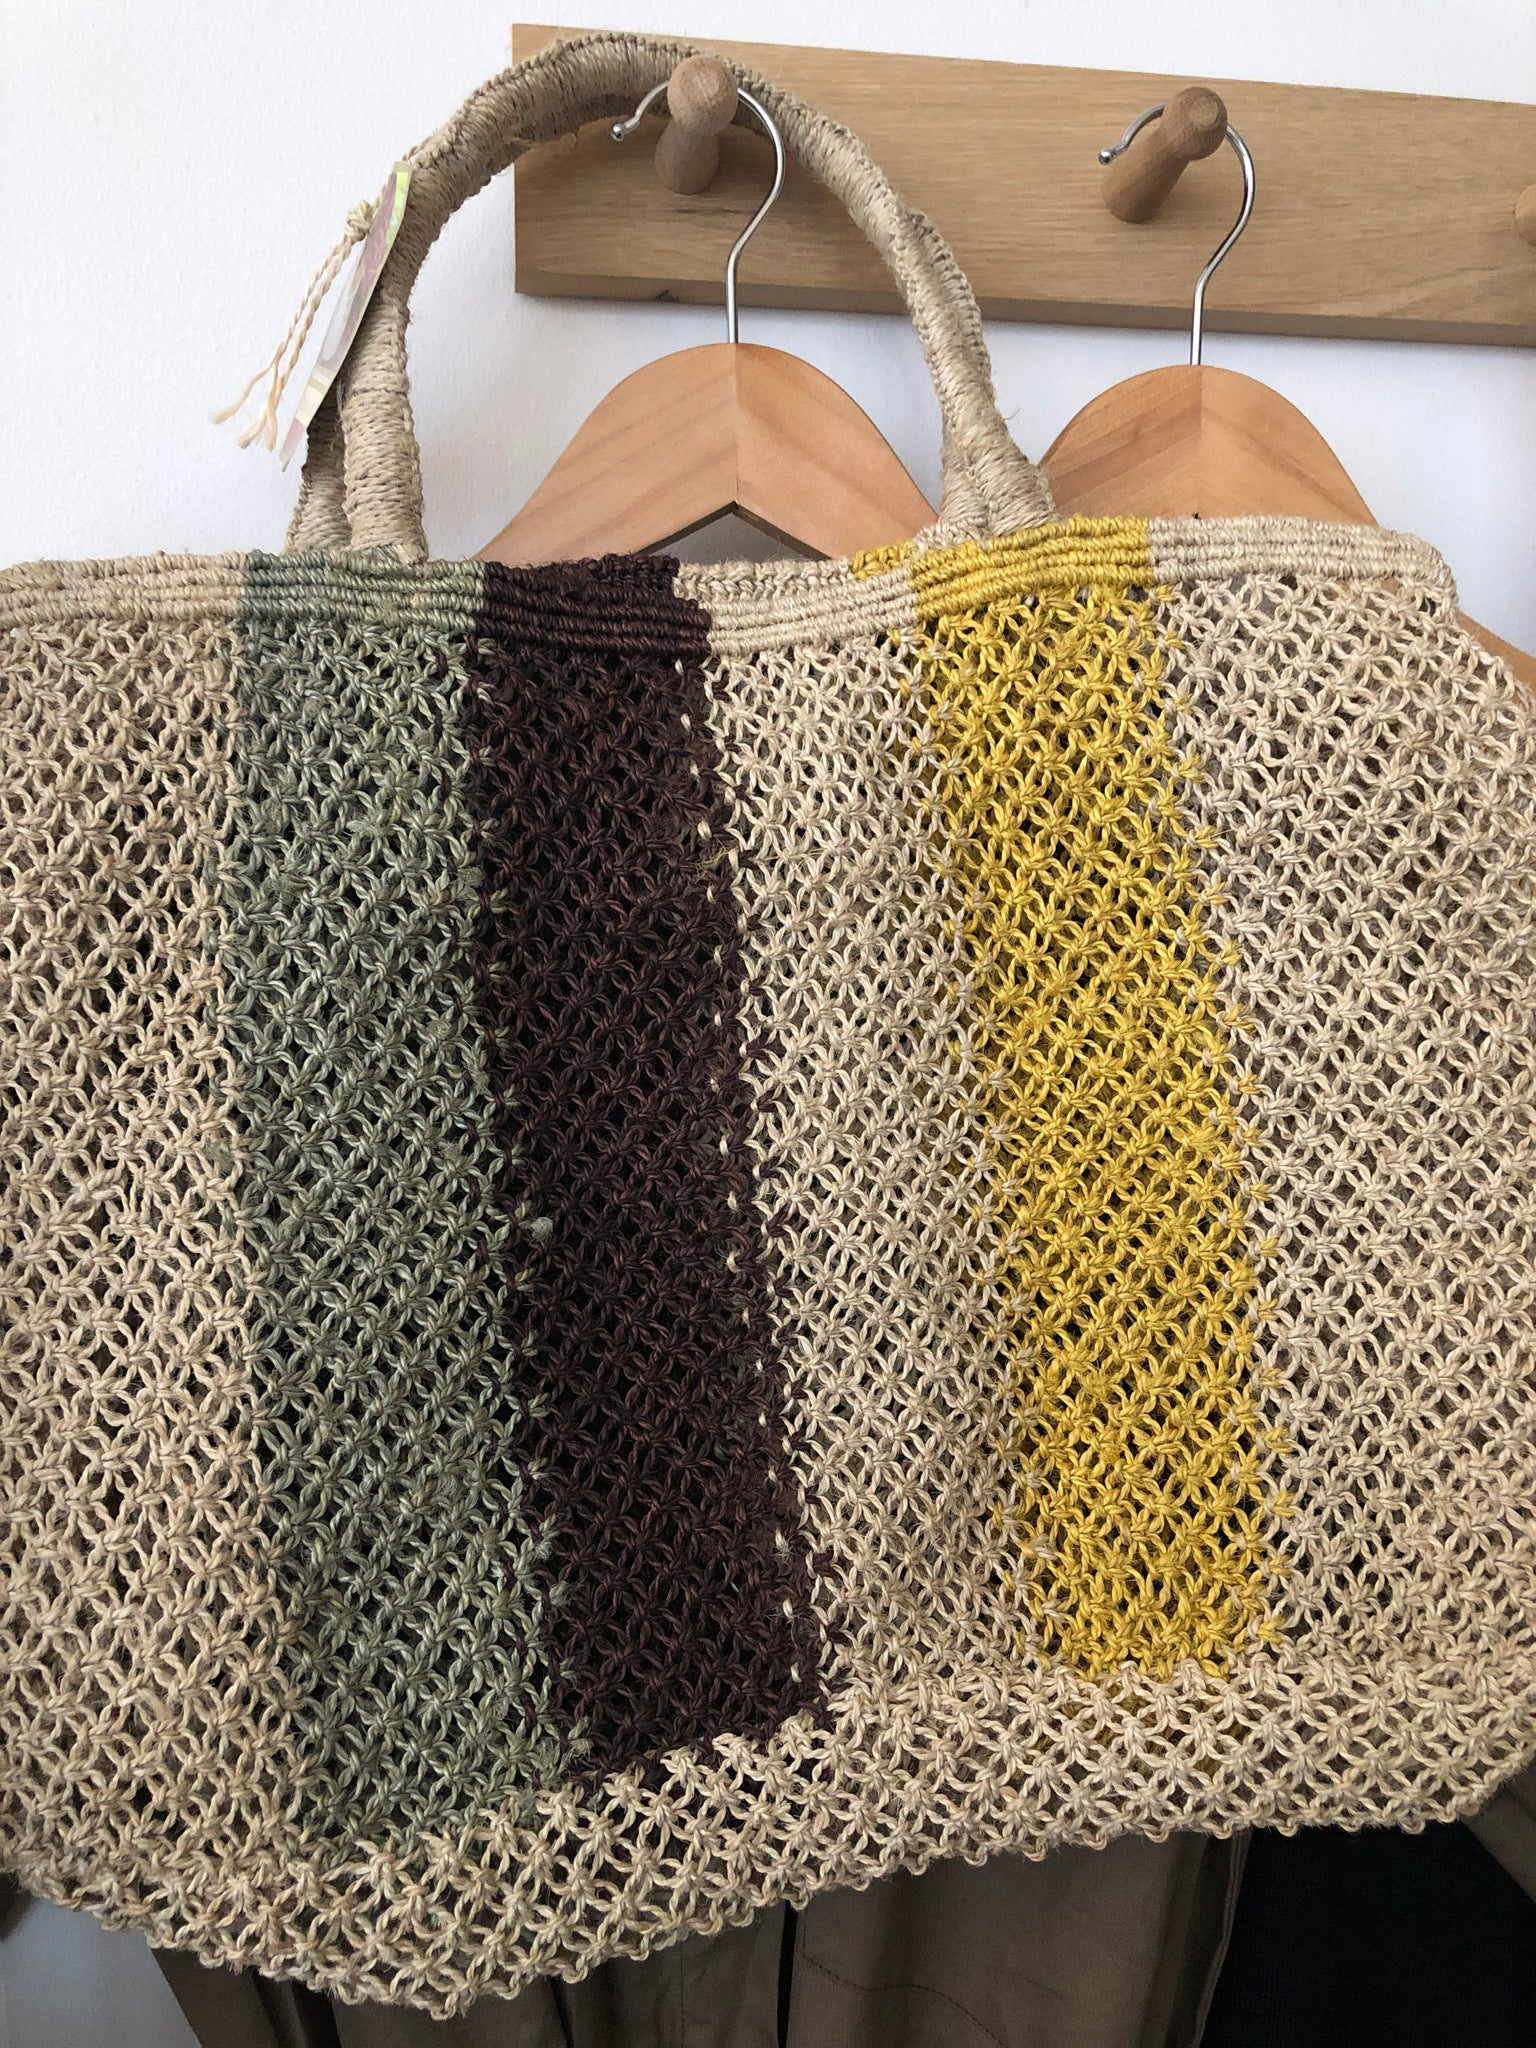 Maison Bengal - Jute macrame Bag with aubergine vertical stripes